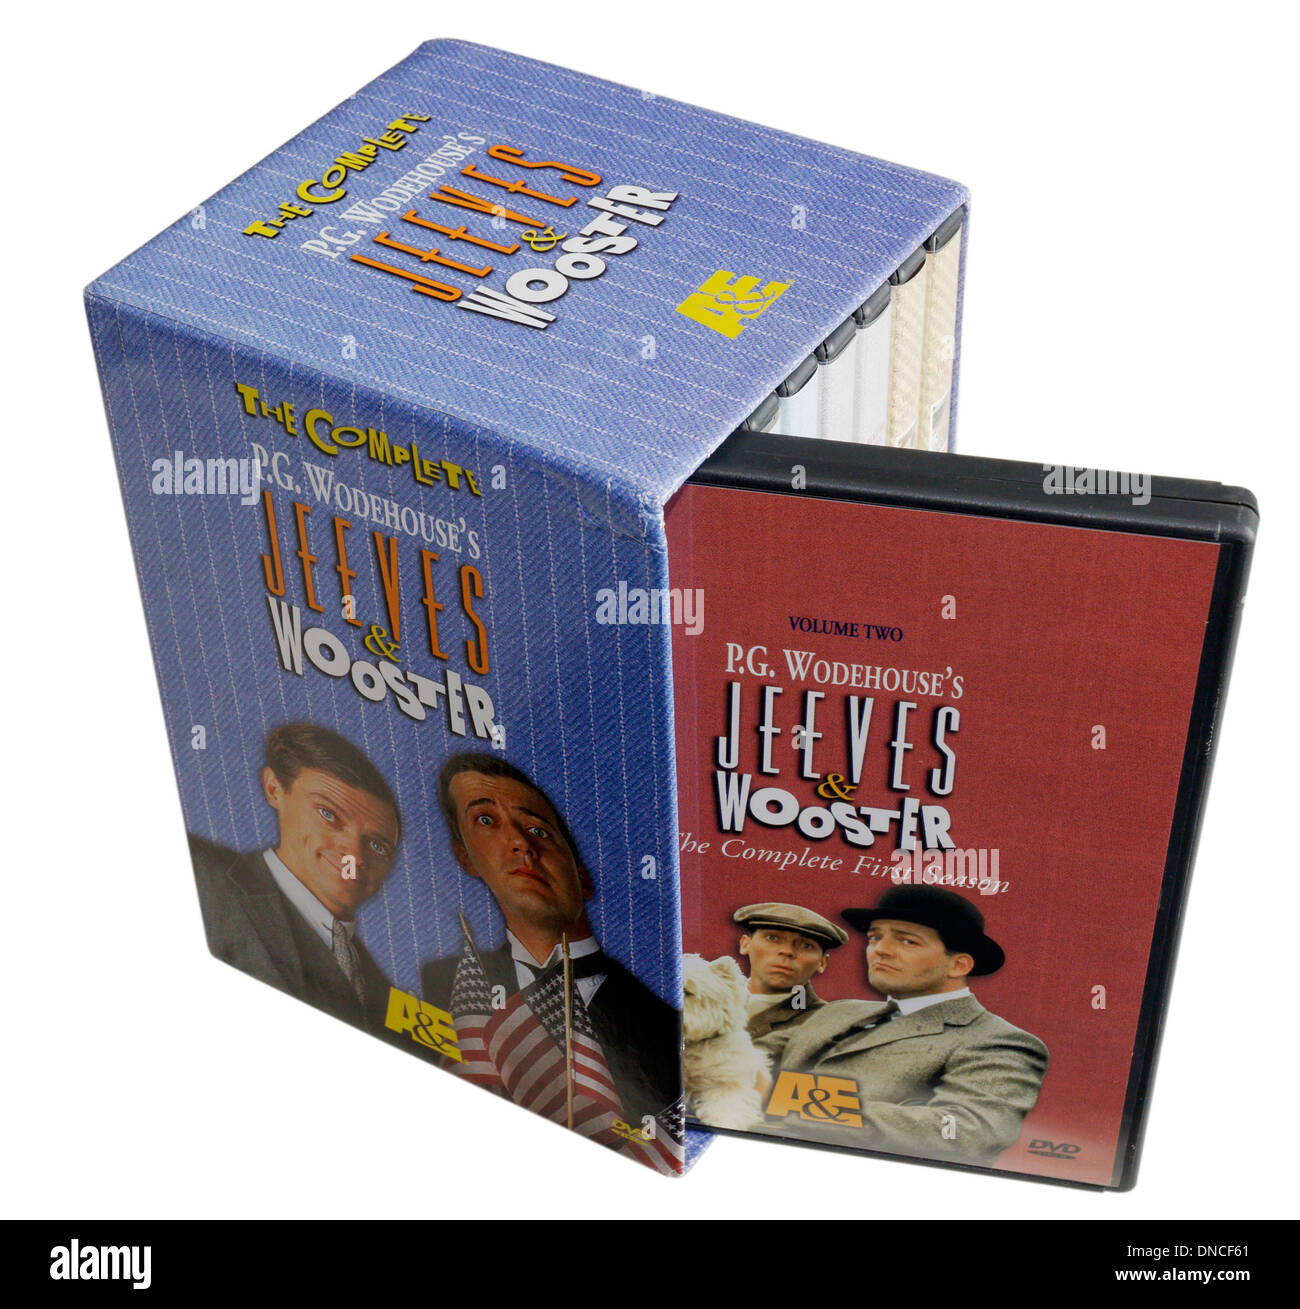 Jeeves and Wooster DVD set - Stock Image